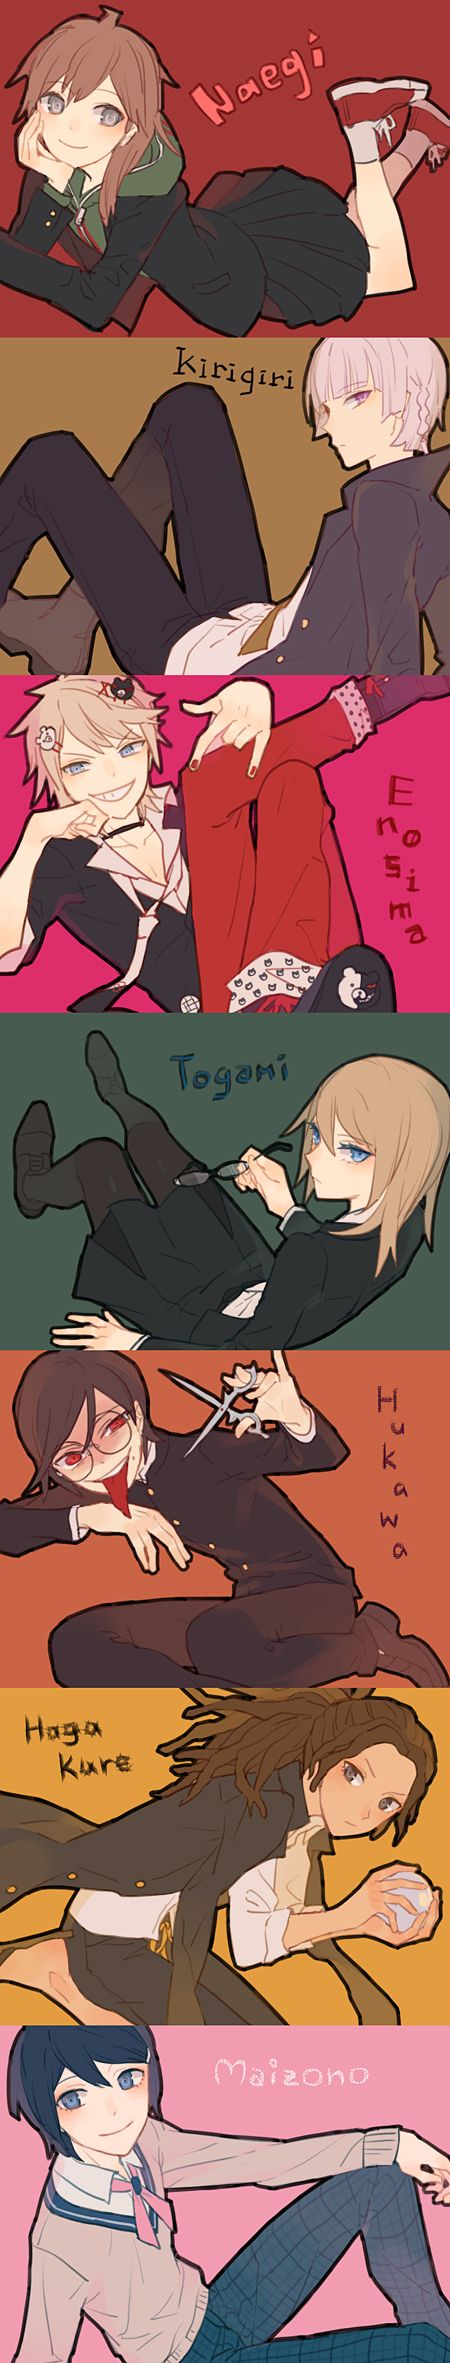 I adopted togami<<< Well, if we're playing THAT game, I'll adopt my own Yandere Killer! I'll adopt Fukawa!